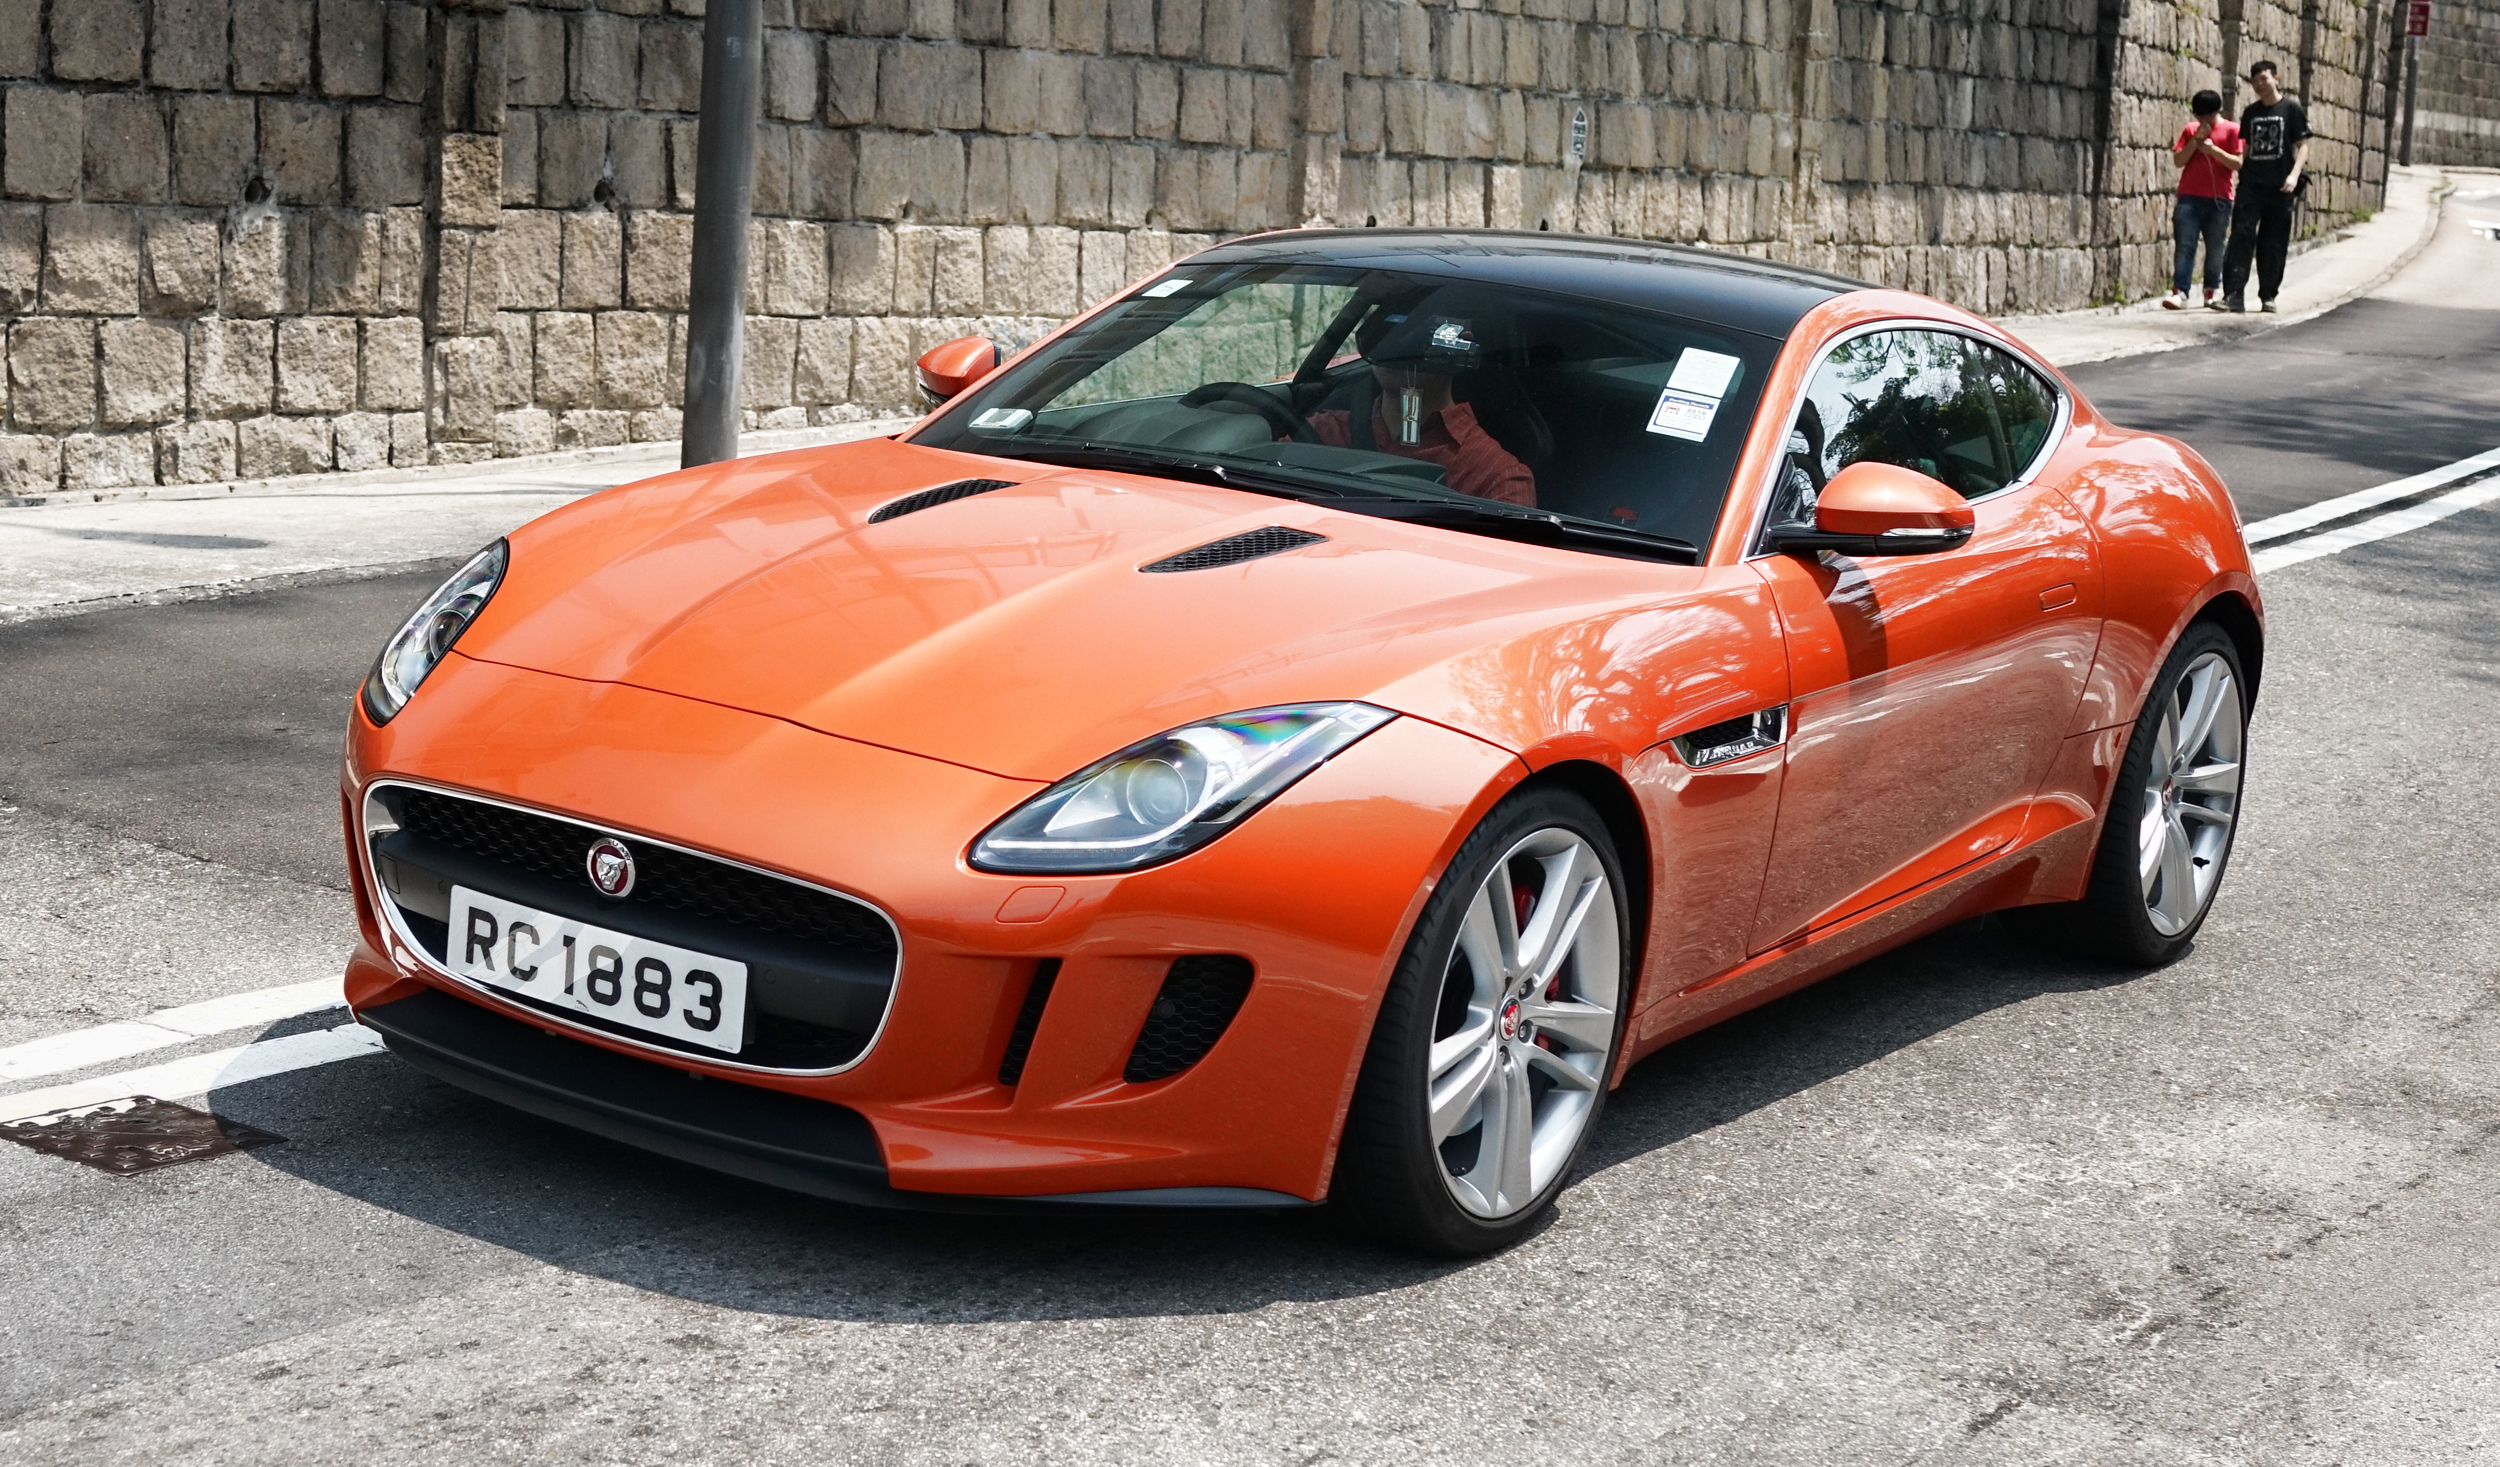 A very, very nice Jaguar sports car.....